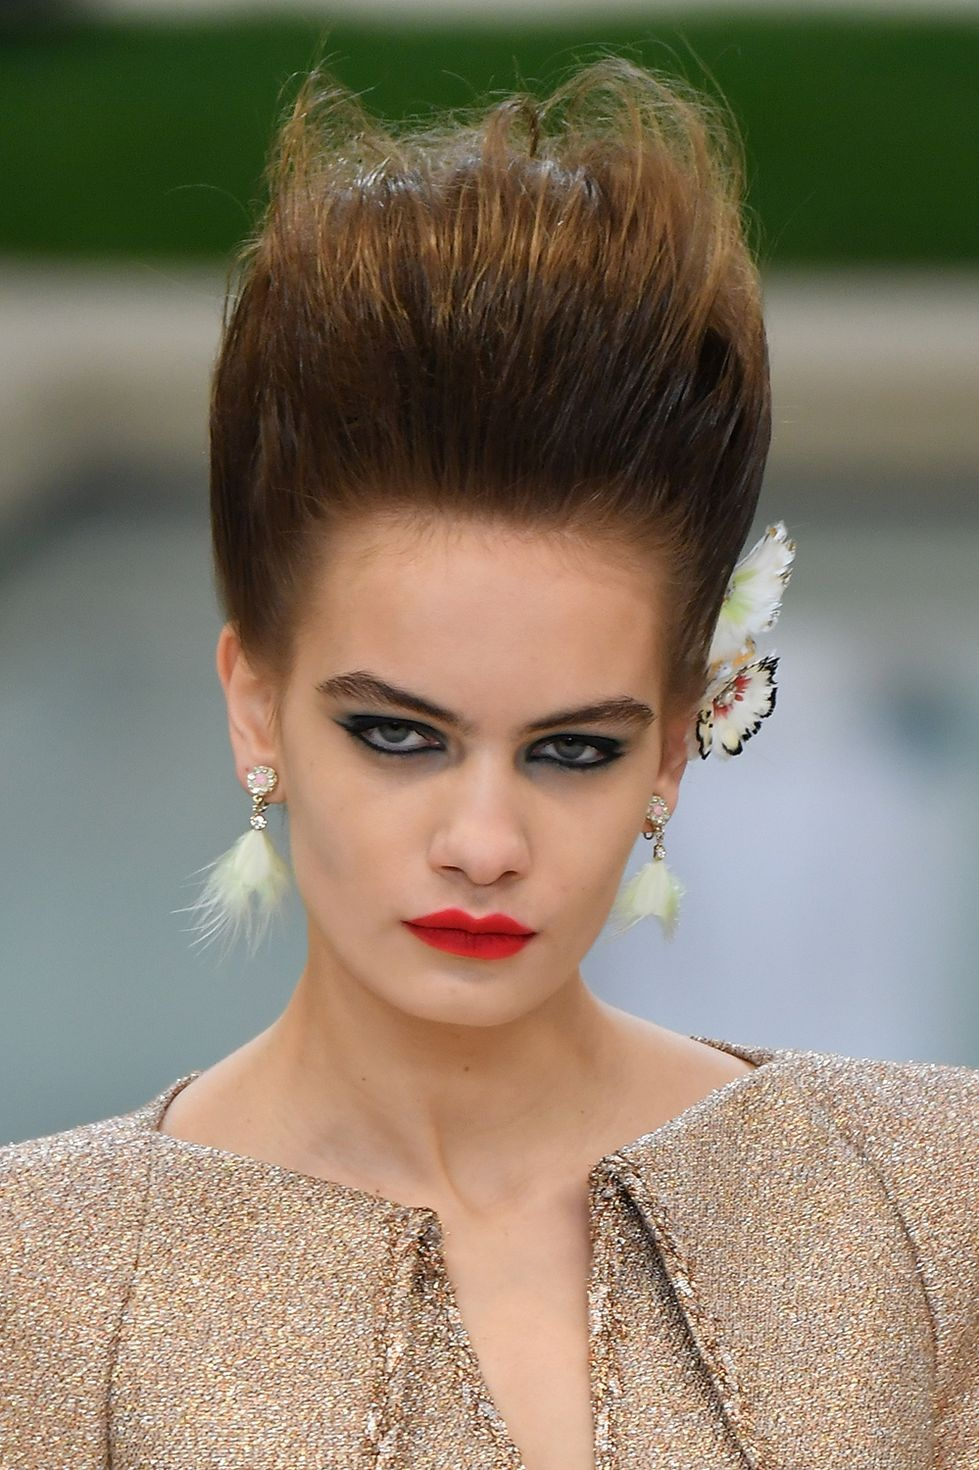 Photo from www.vogue.com